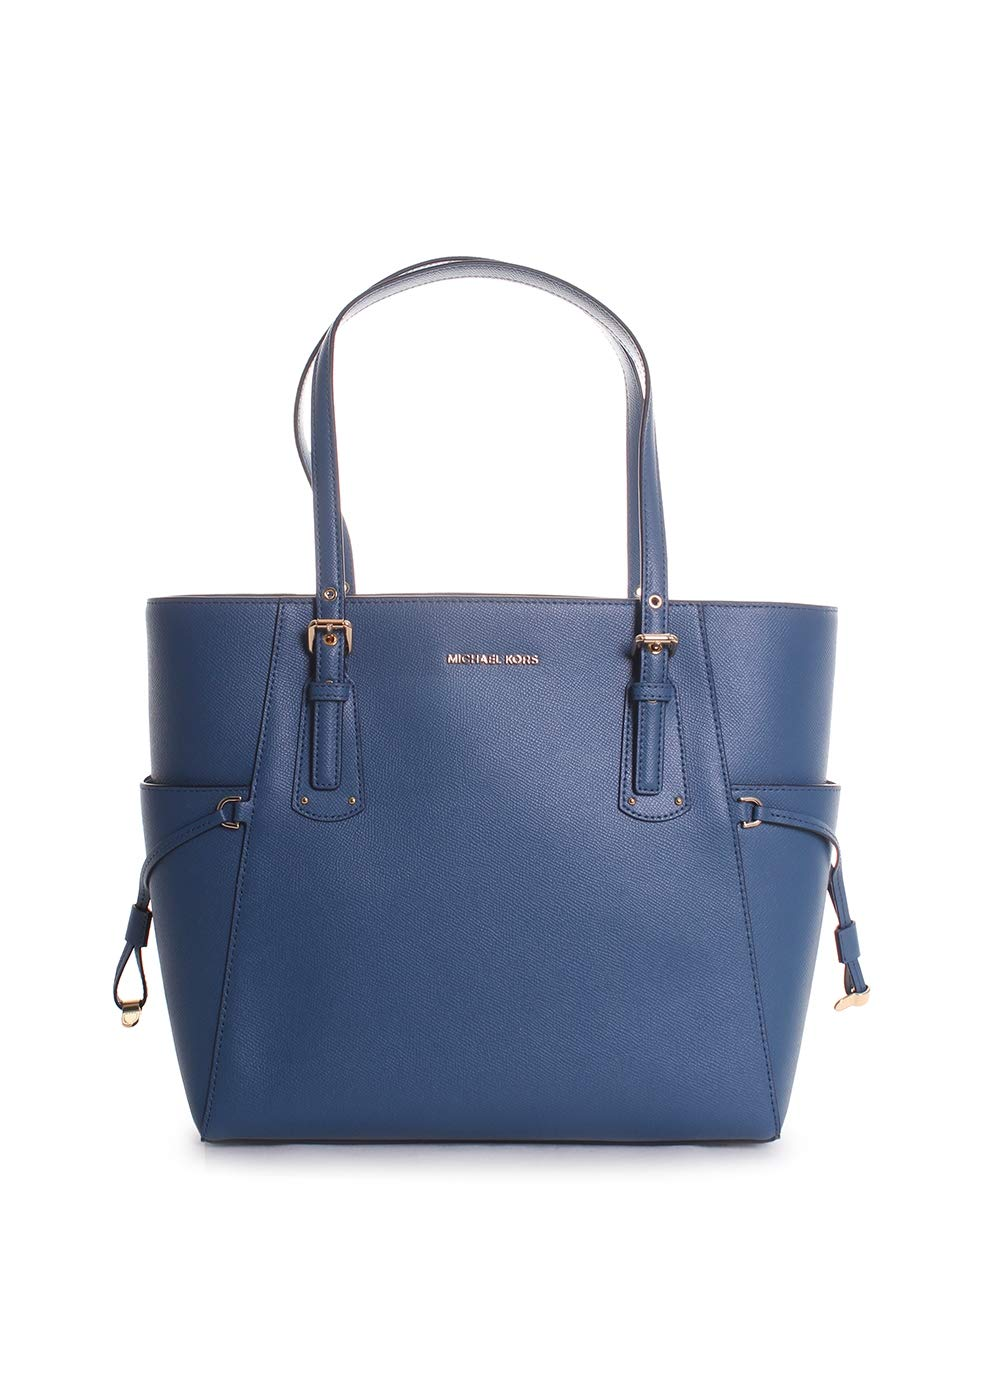 Michael Kors Voyager East West Leather Tote Handbag in Dark Chambray